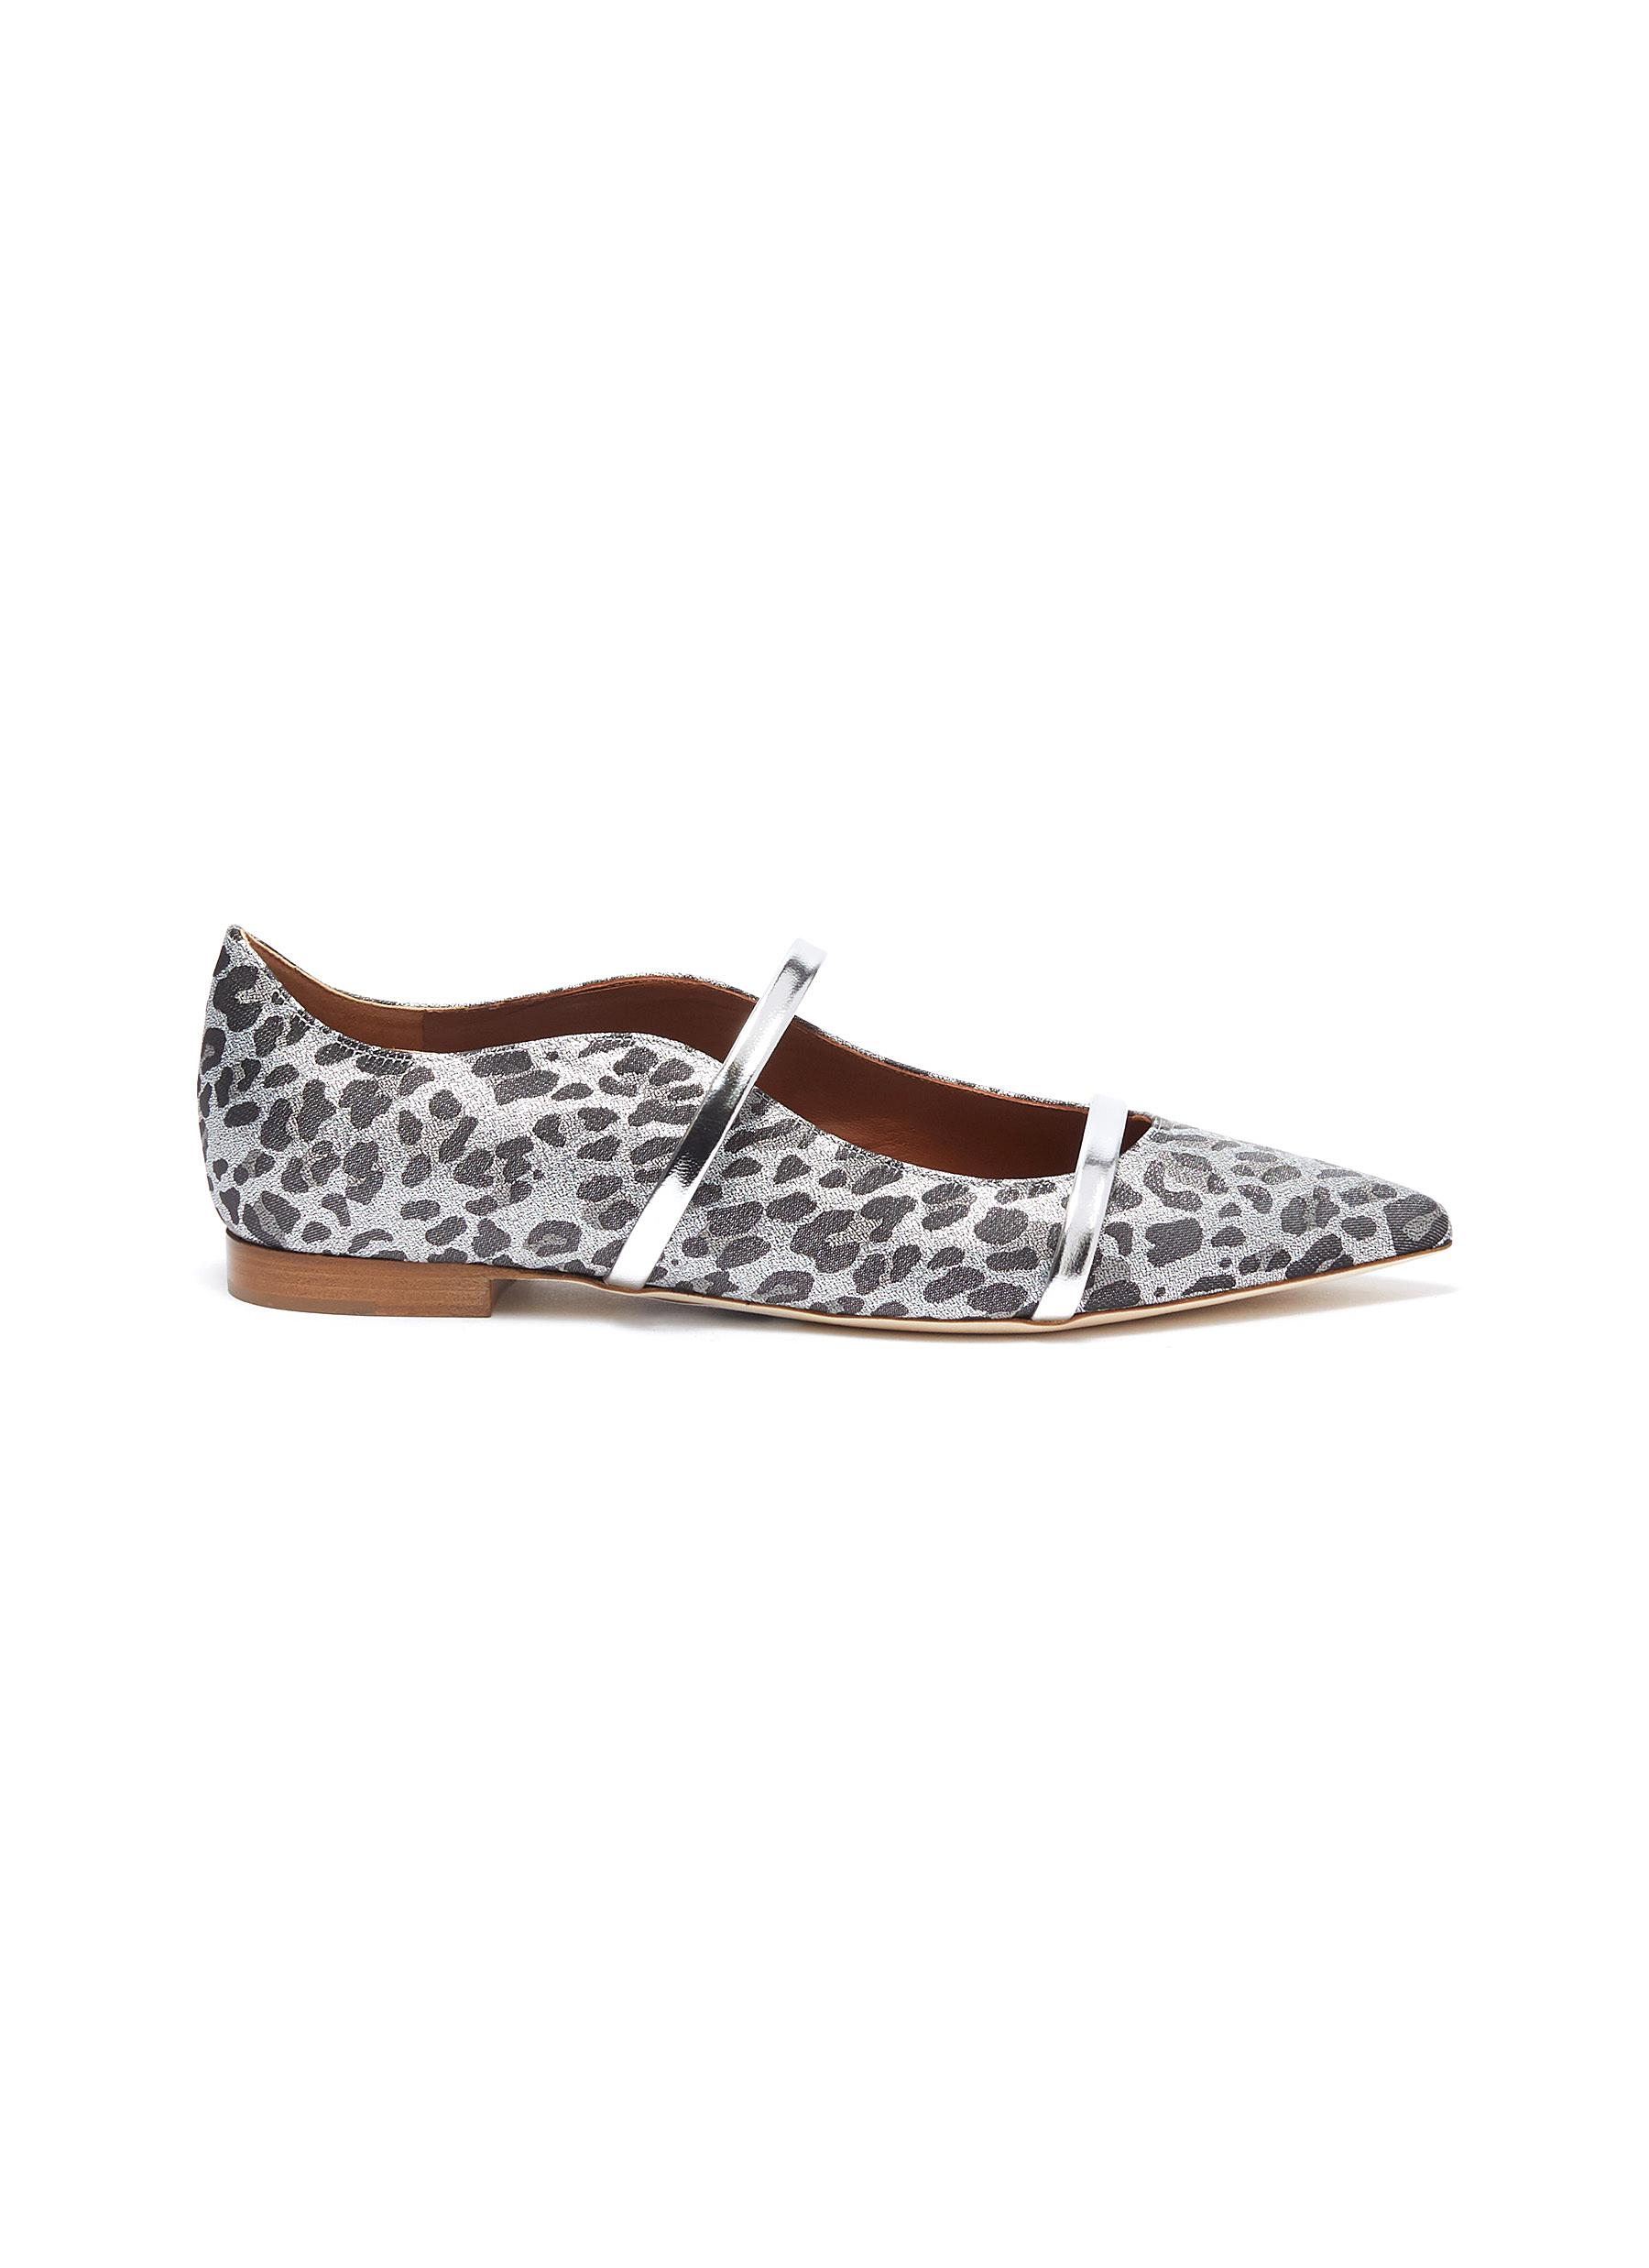 Malone Souliers Flats Maureen strappy leopard print ballerina flats